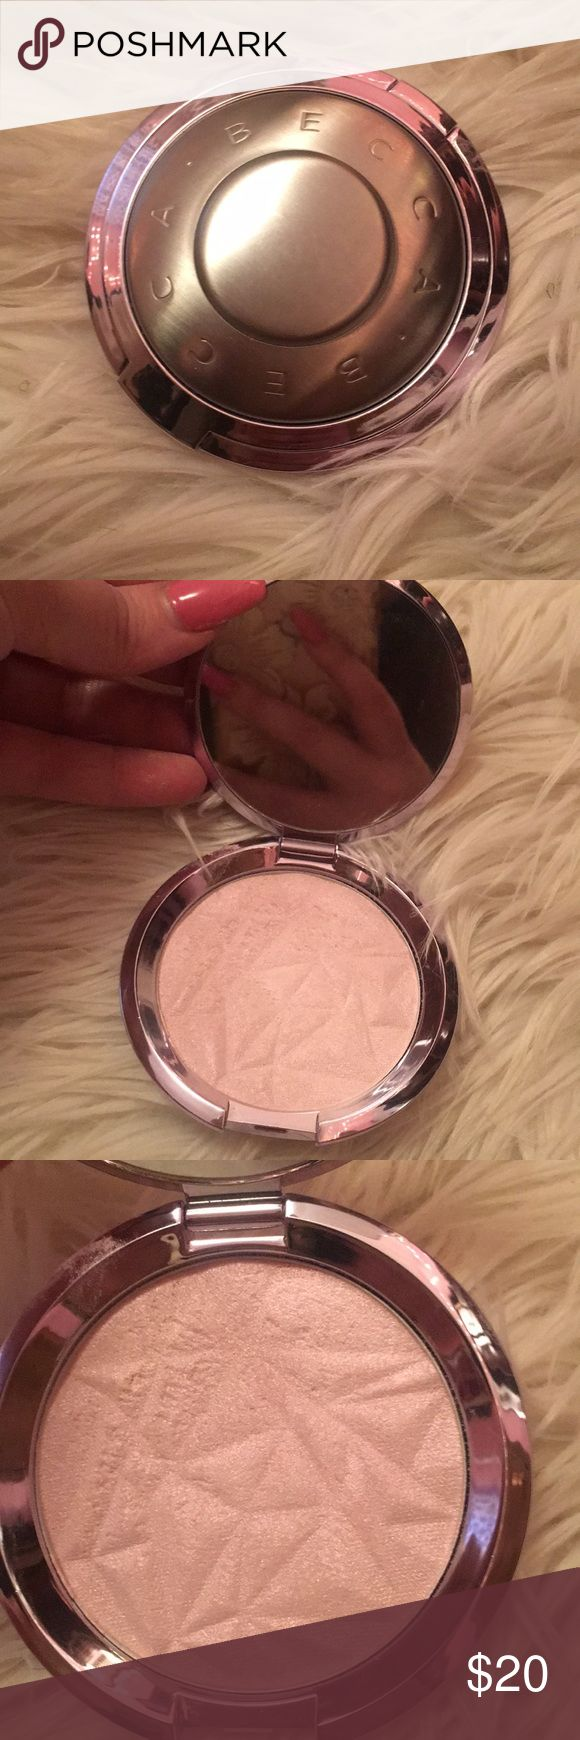 Becca Shimmering Skin Perfector Pressed Prismatic Amethyst. Swatched BECCA Makeup Luminizer